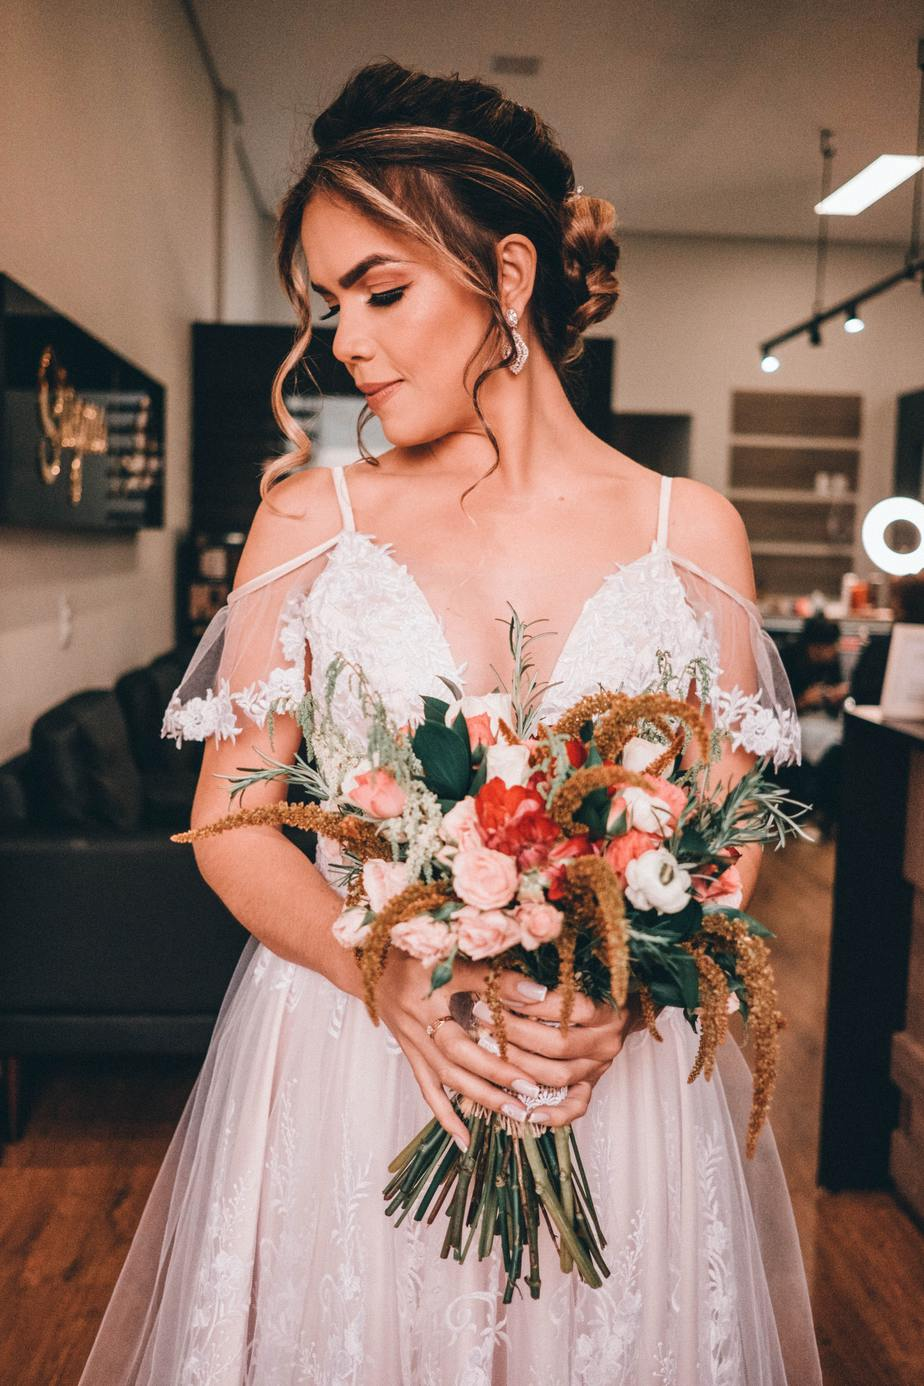 Everything you Need to Start Planning Your Wedding! The day the love of your life proposes is truly one of the most wonderful moments you can experience. There are tears of joy and excitement, phone calls to loved